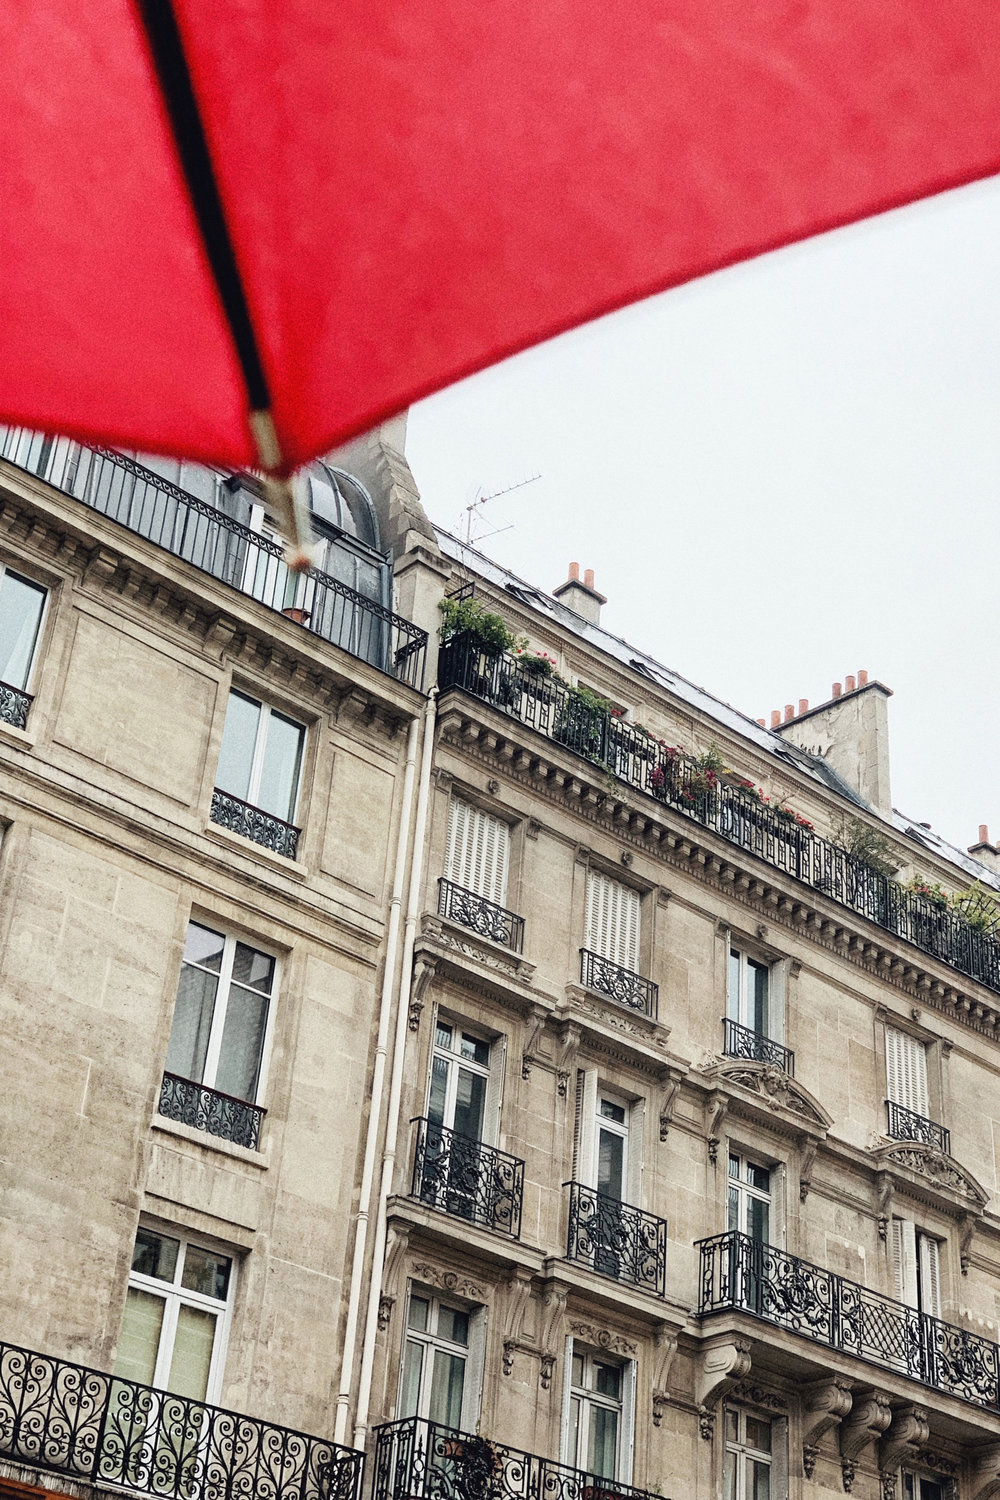 Paris in the rain by Carin Olsson